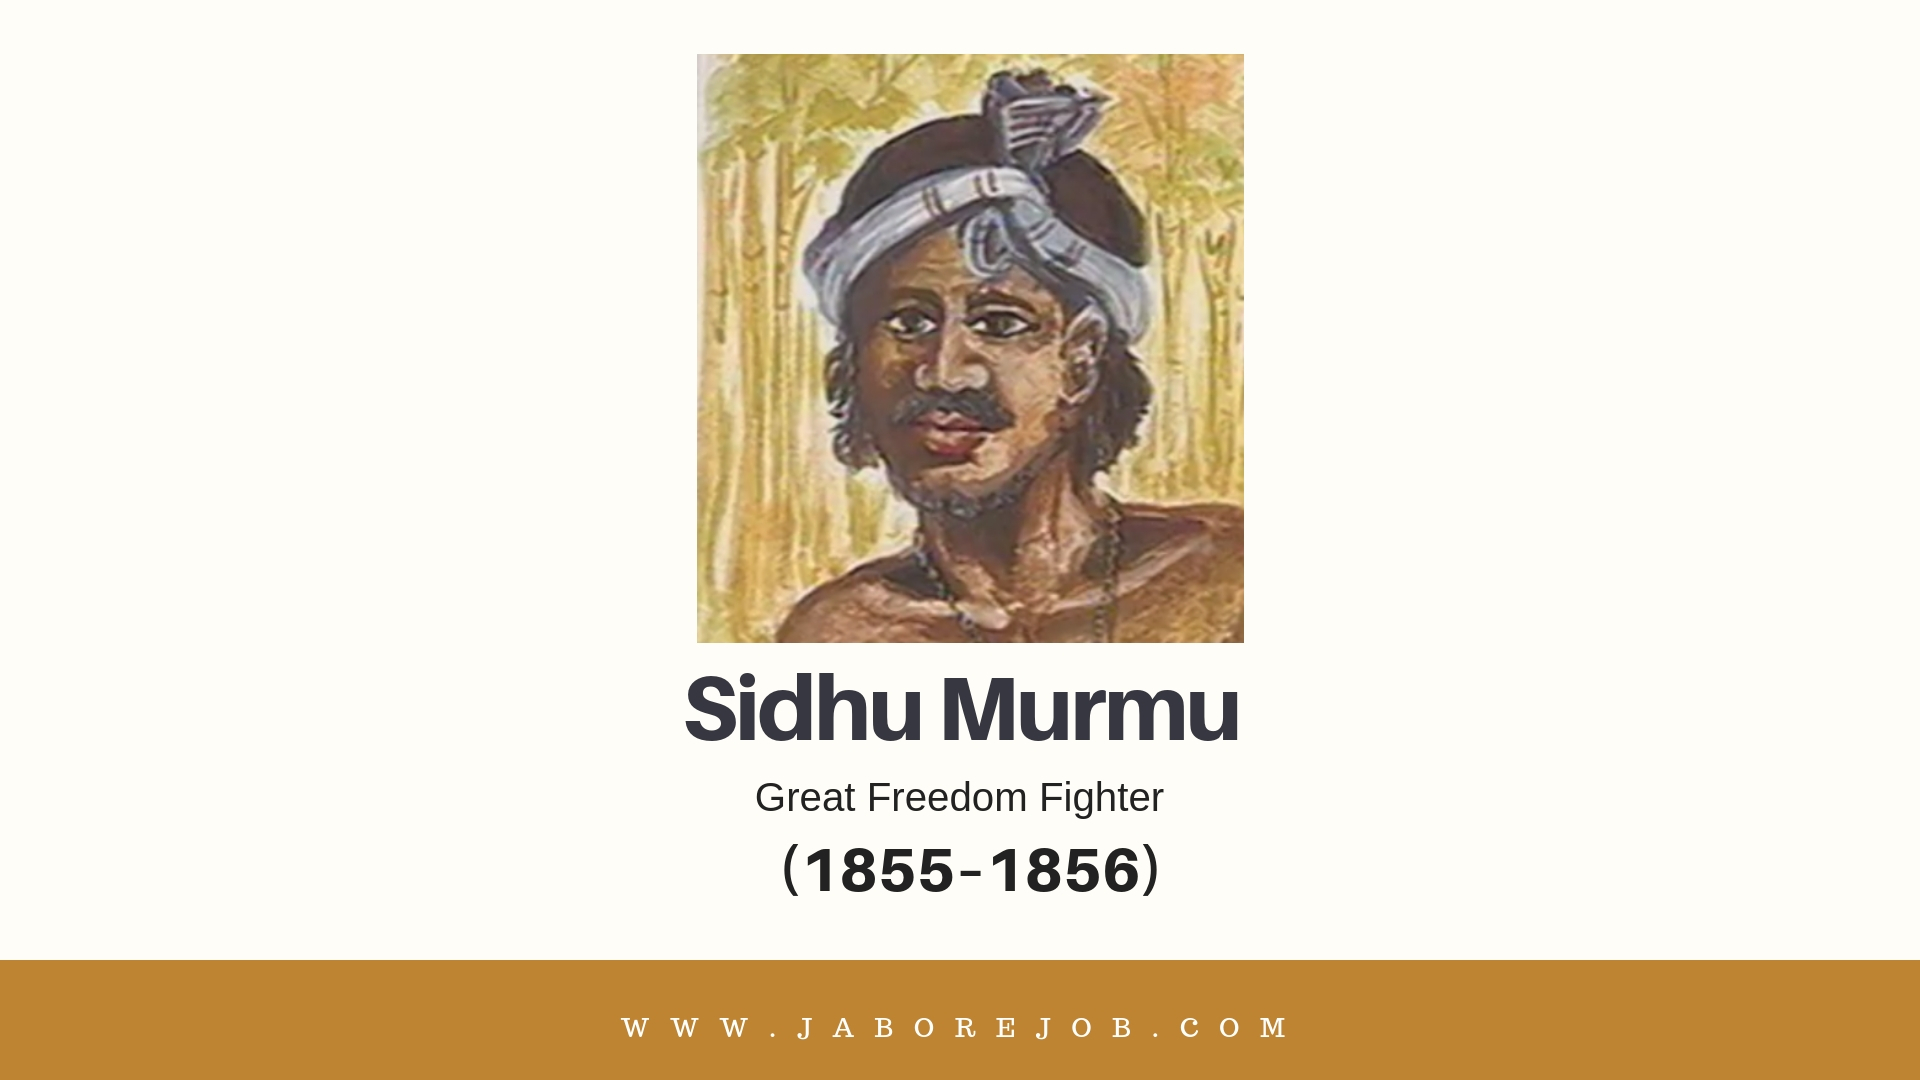 Sidhu Murmu, Sidhu Murmu freedom fighter, Sidhu Murmu freedom fighter biography, Sidhu Murmu tribal fighter